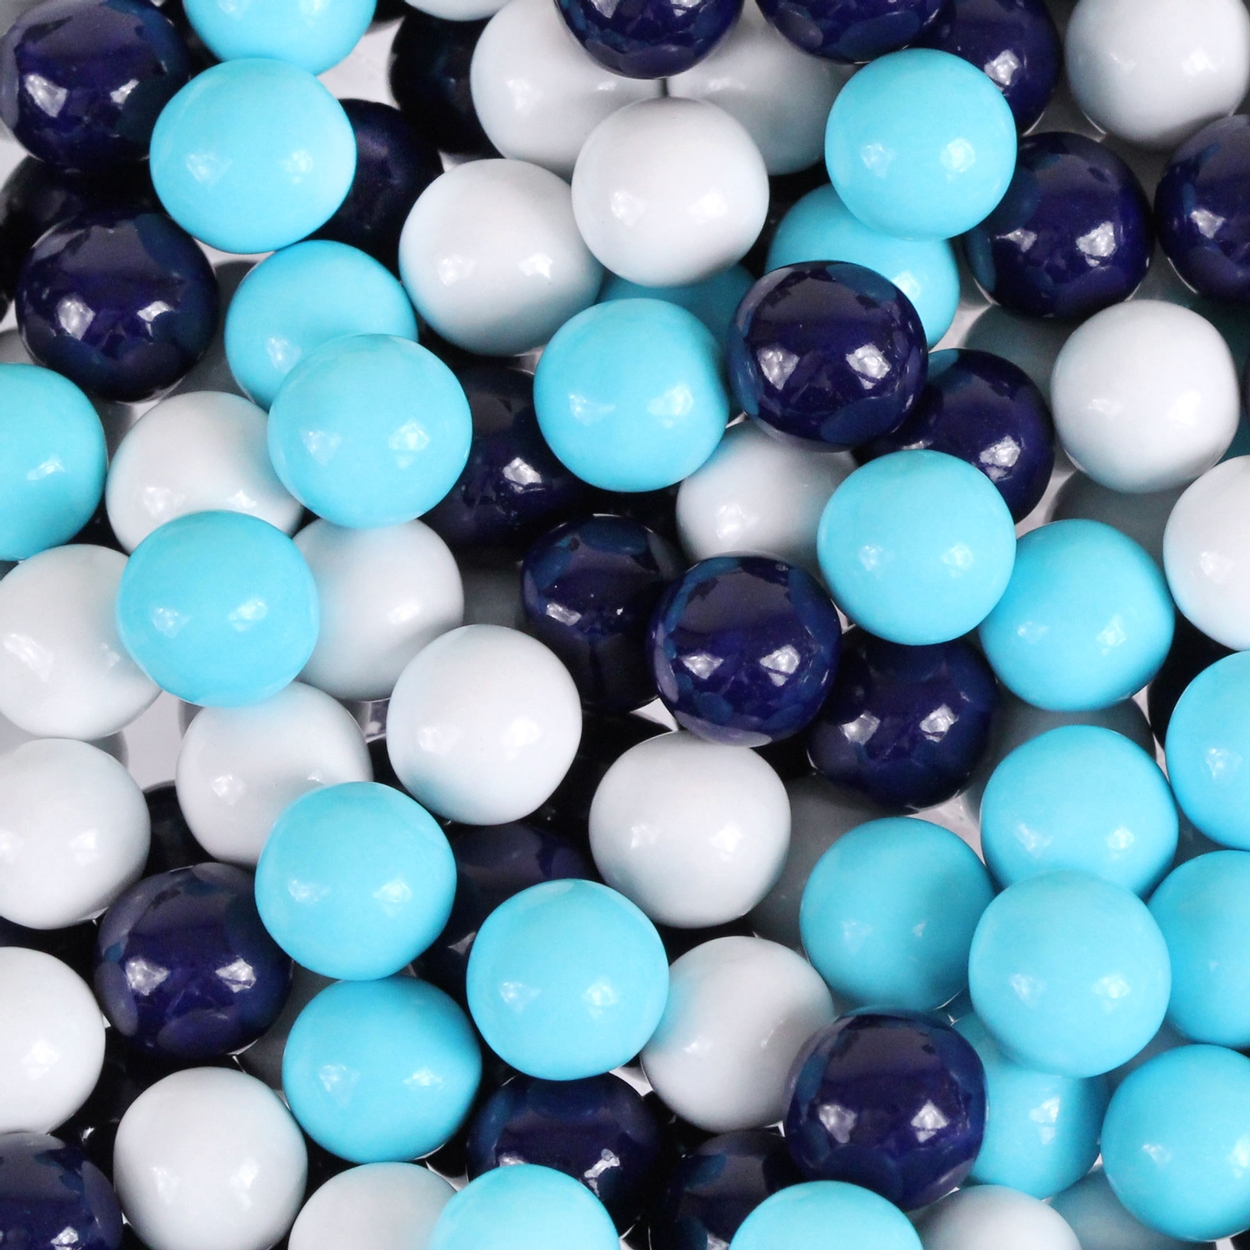 Navy Blue, Powder Blue U0026 White Sixlets | Candy Color Palatte Collection U2022  Oh! Nuts®